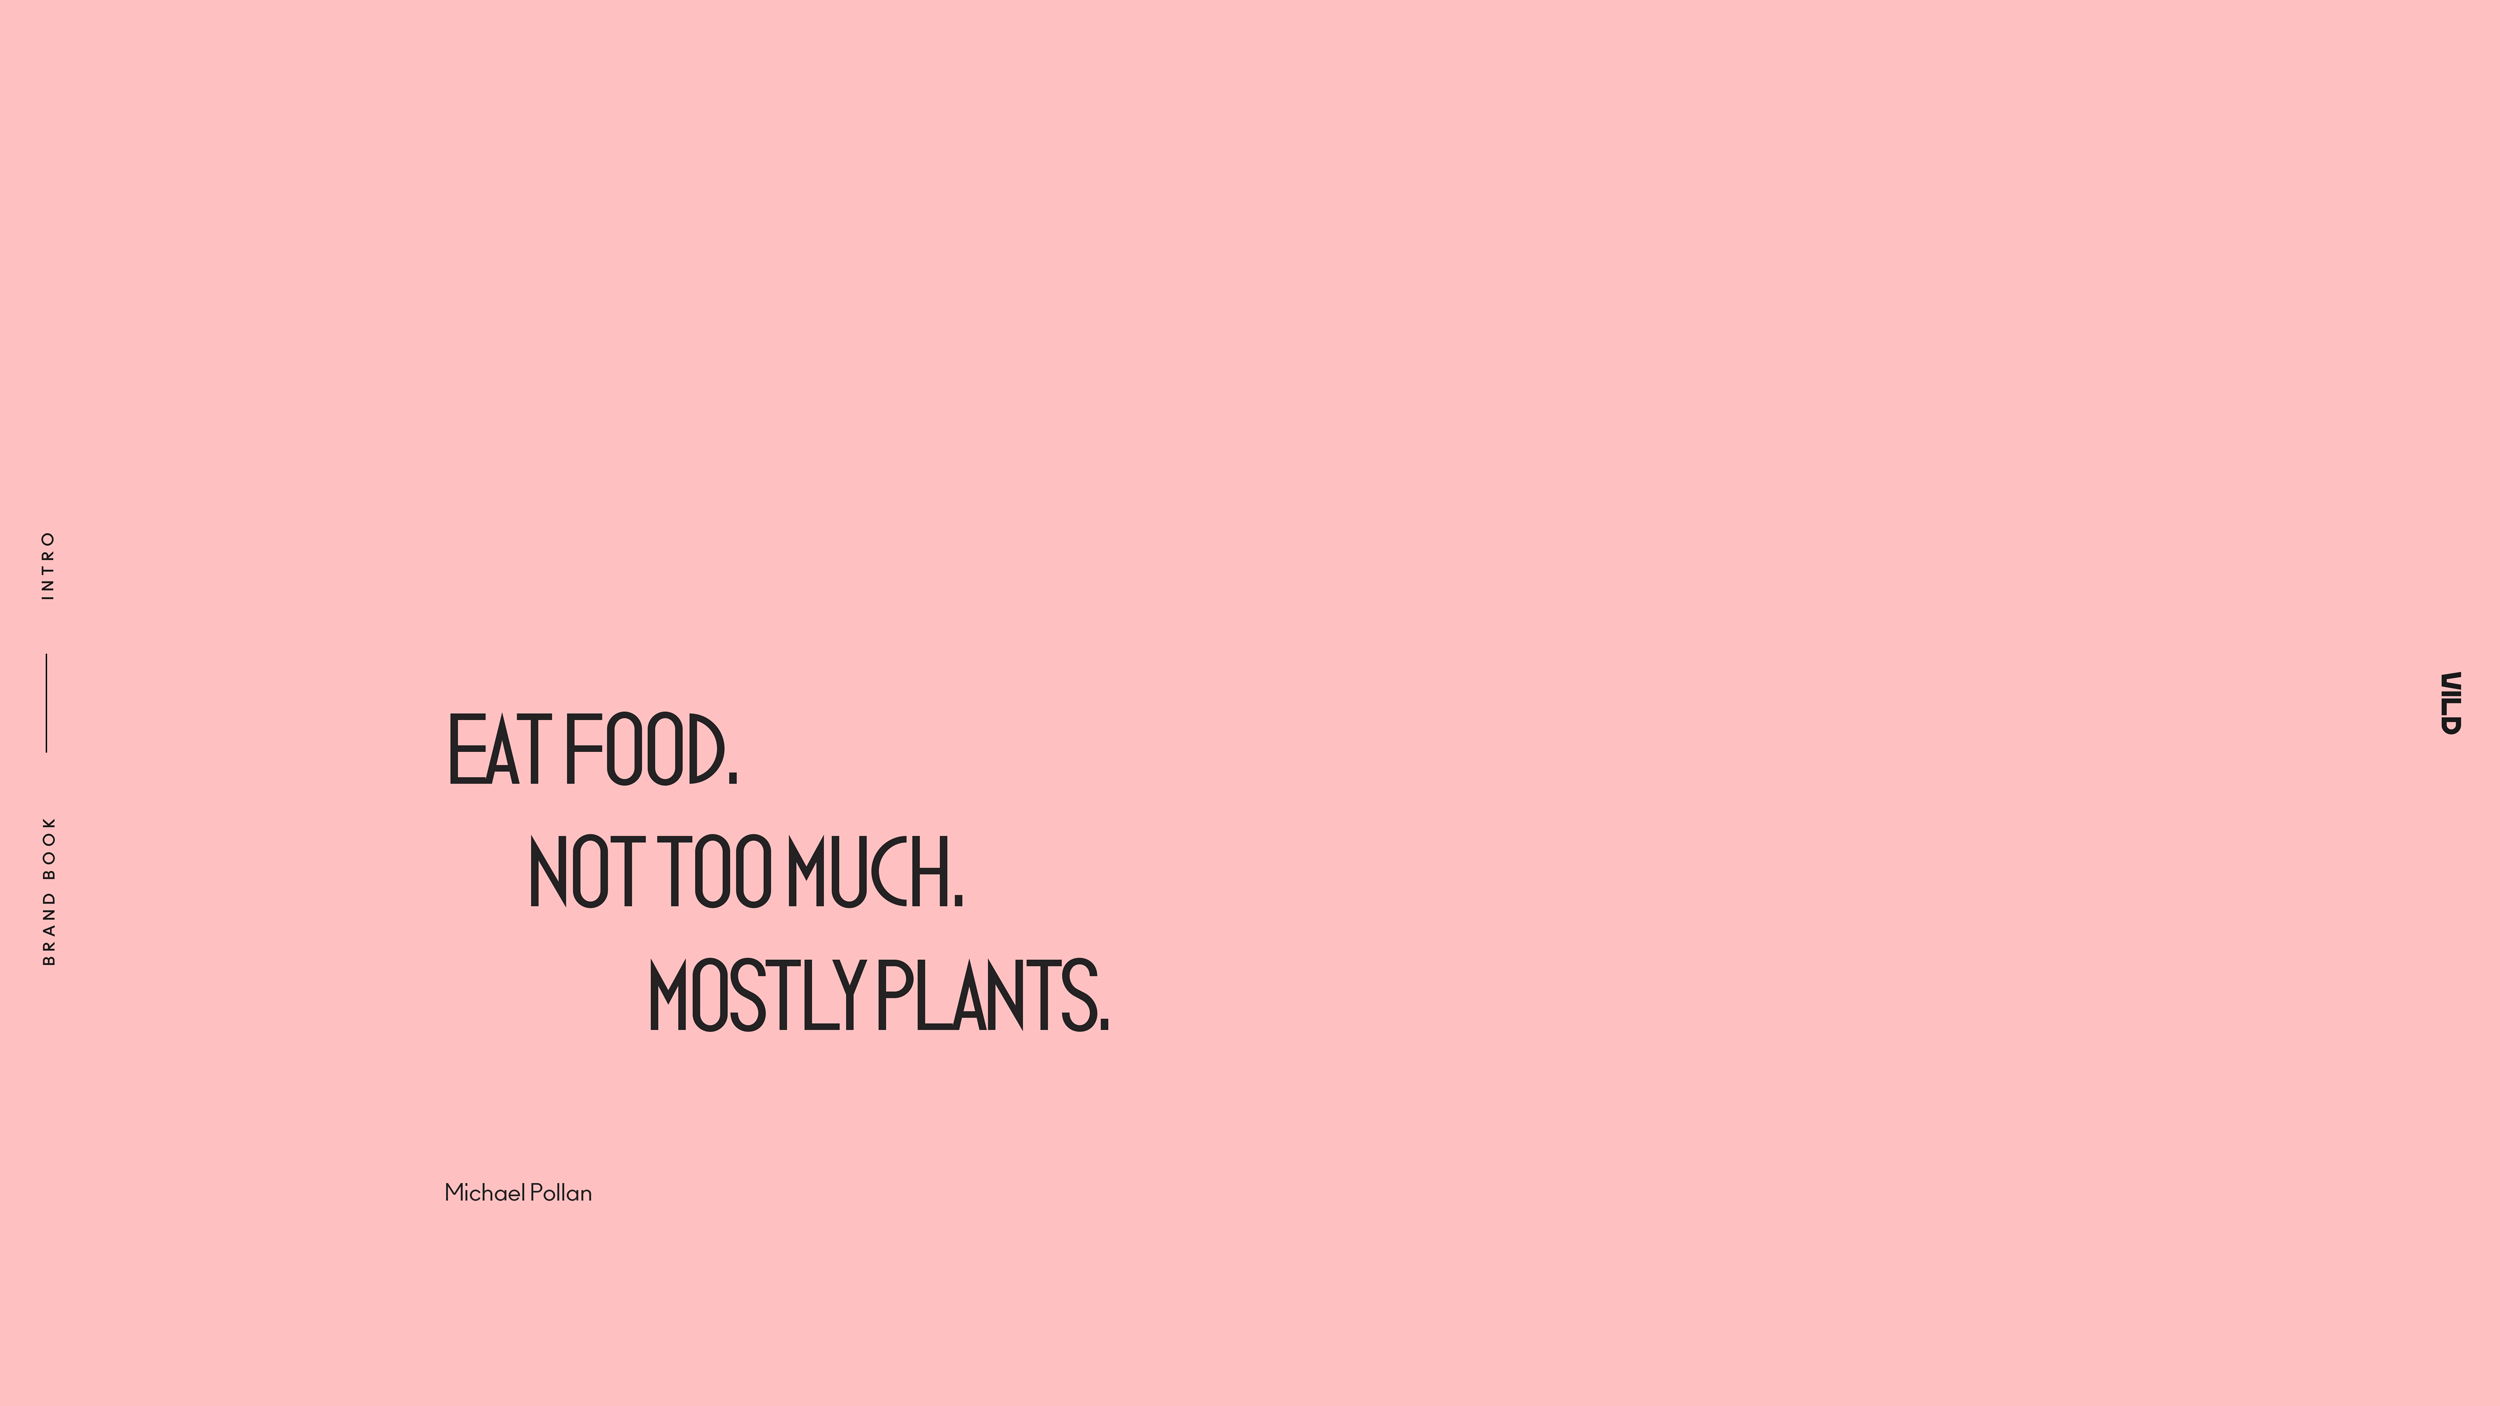 Our Mantra.... - Fazer's goal was to Start a revolution in plant-based food by making healthier food choices easier for the many. We were heavily inspired by the quotes of Michael Pollon, who's approach to diet is dead simple and easy to digest.